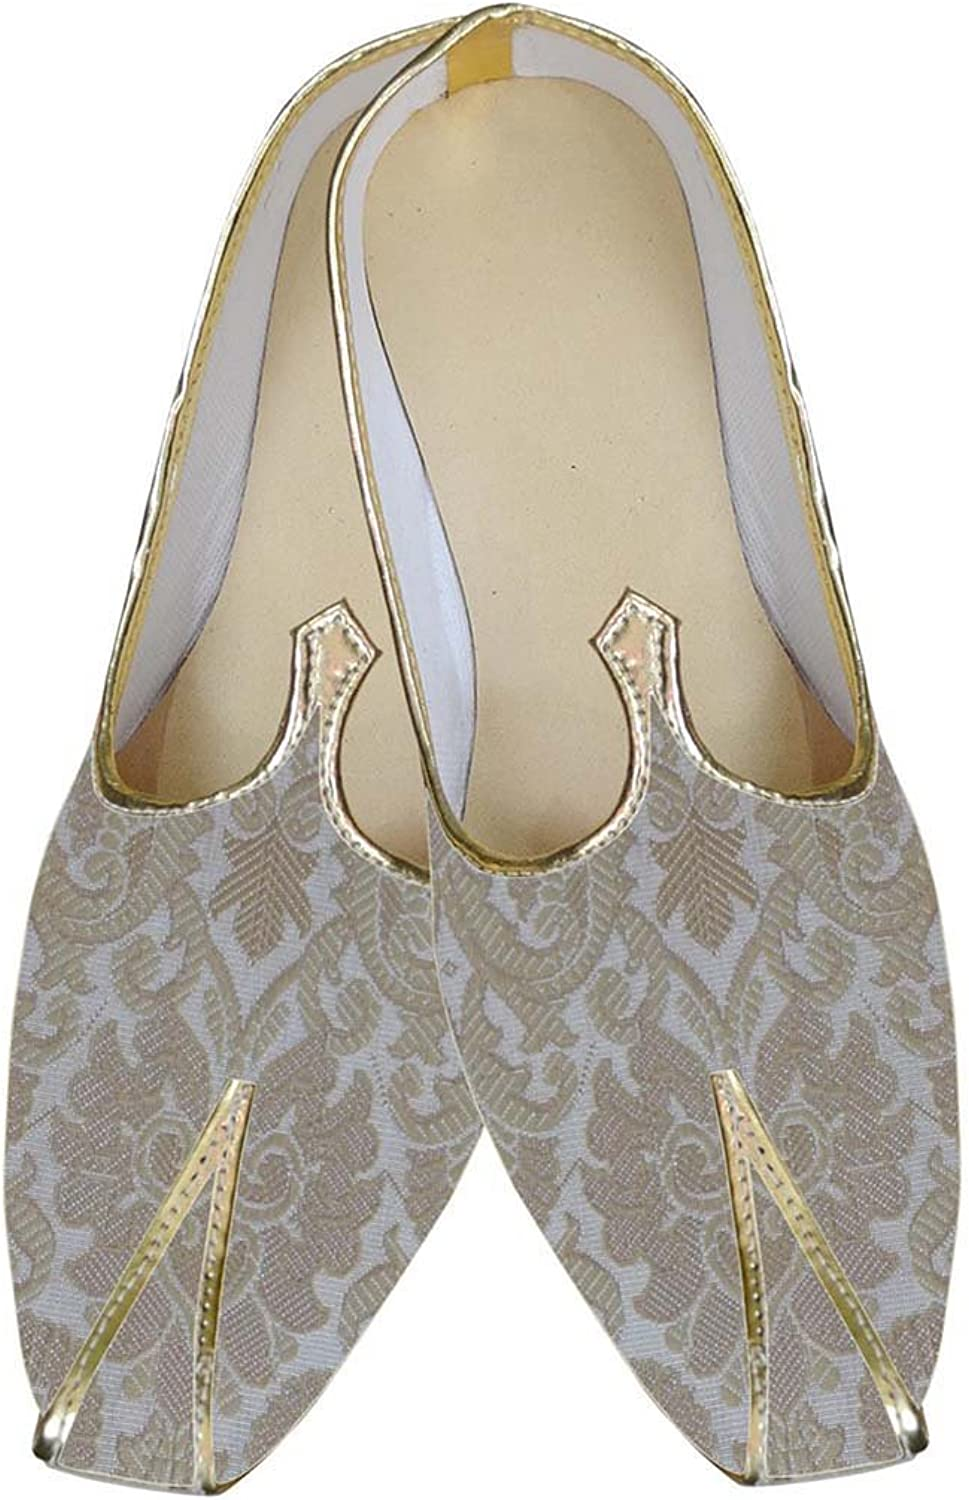 INMONARCH Mens Cream and Beige Indian Wedding shoes MJ0161